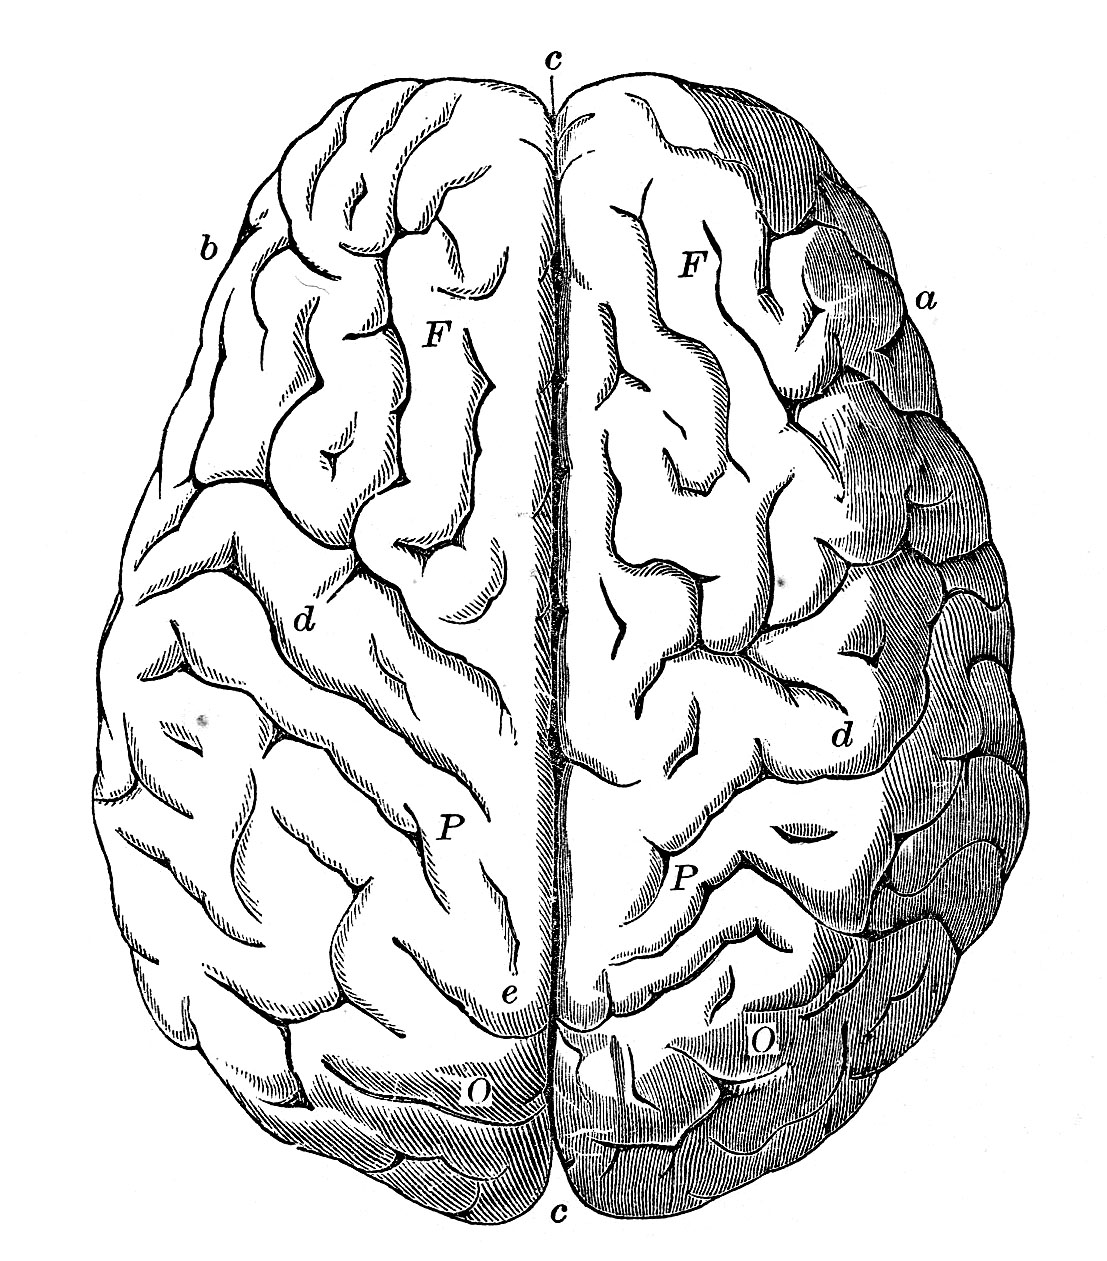 Anatomy clipart brain Clipart — Images Clipart Free